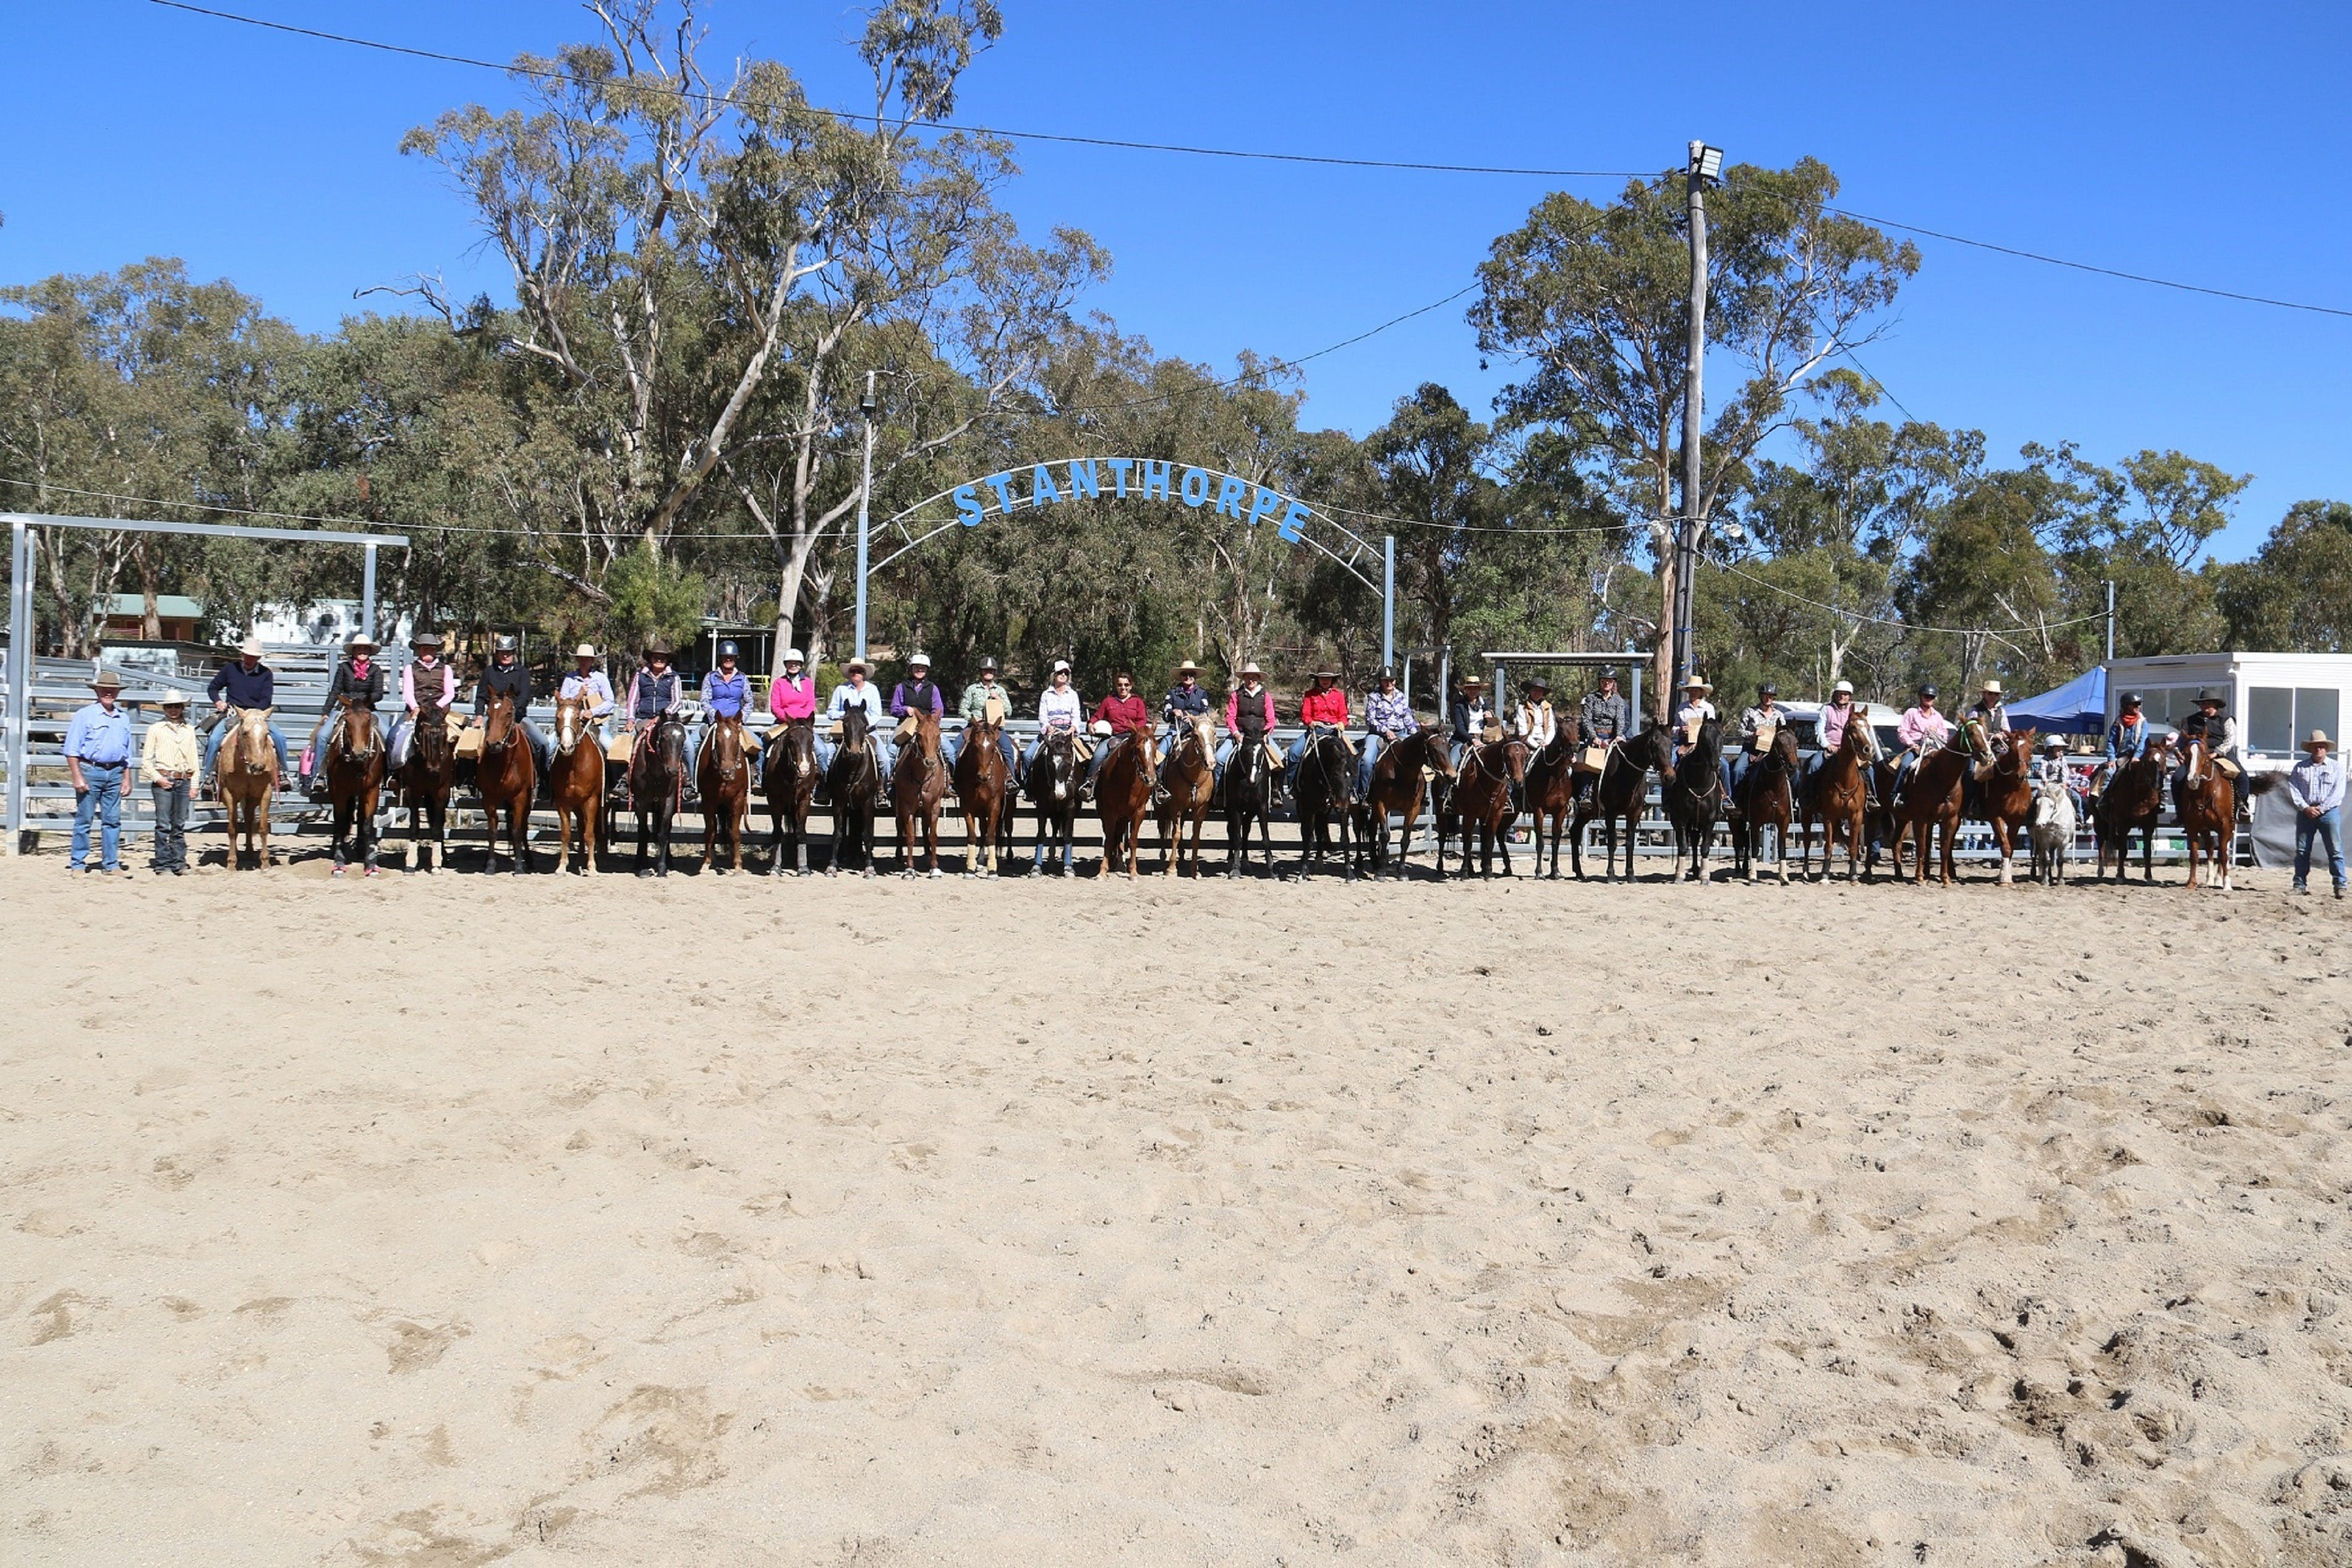 Australian Campdraft Association National Finals Campdraft 2021 - VIC Tourism